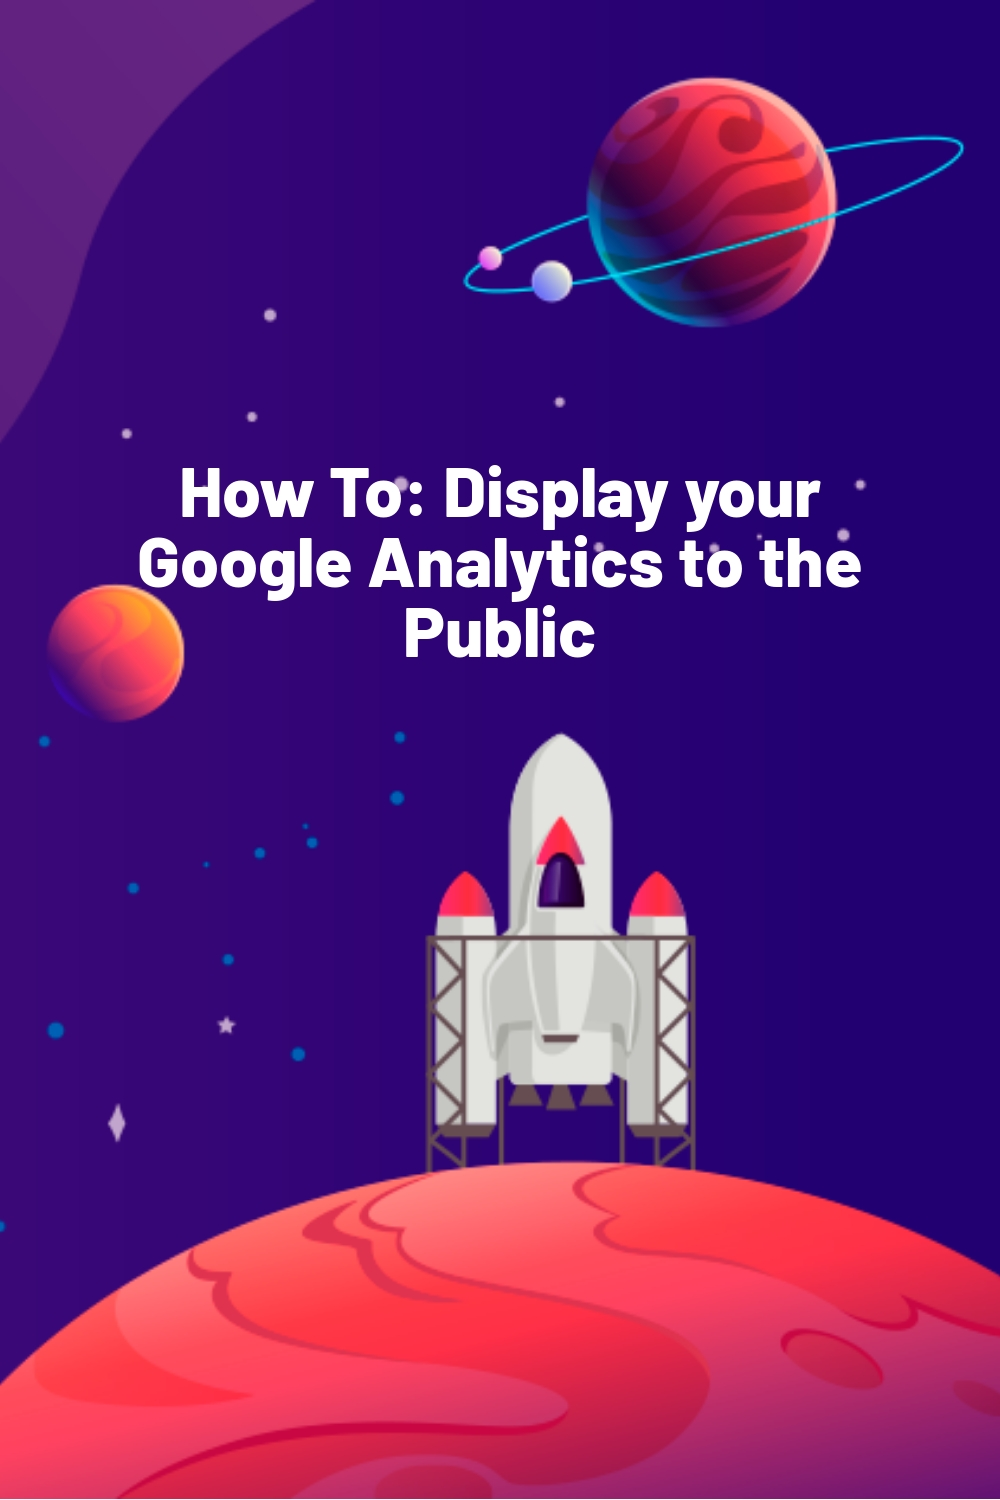 How To: Display your Google Analytics to the Public